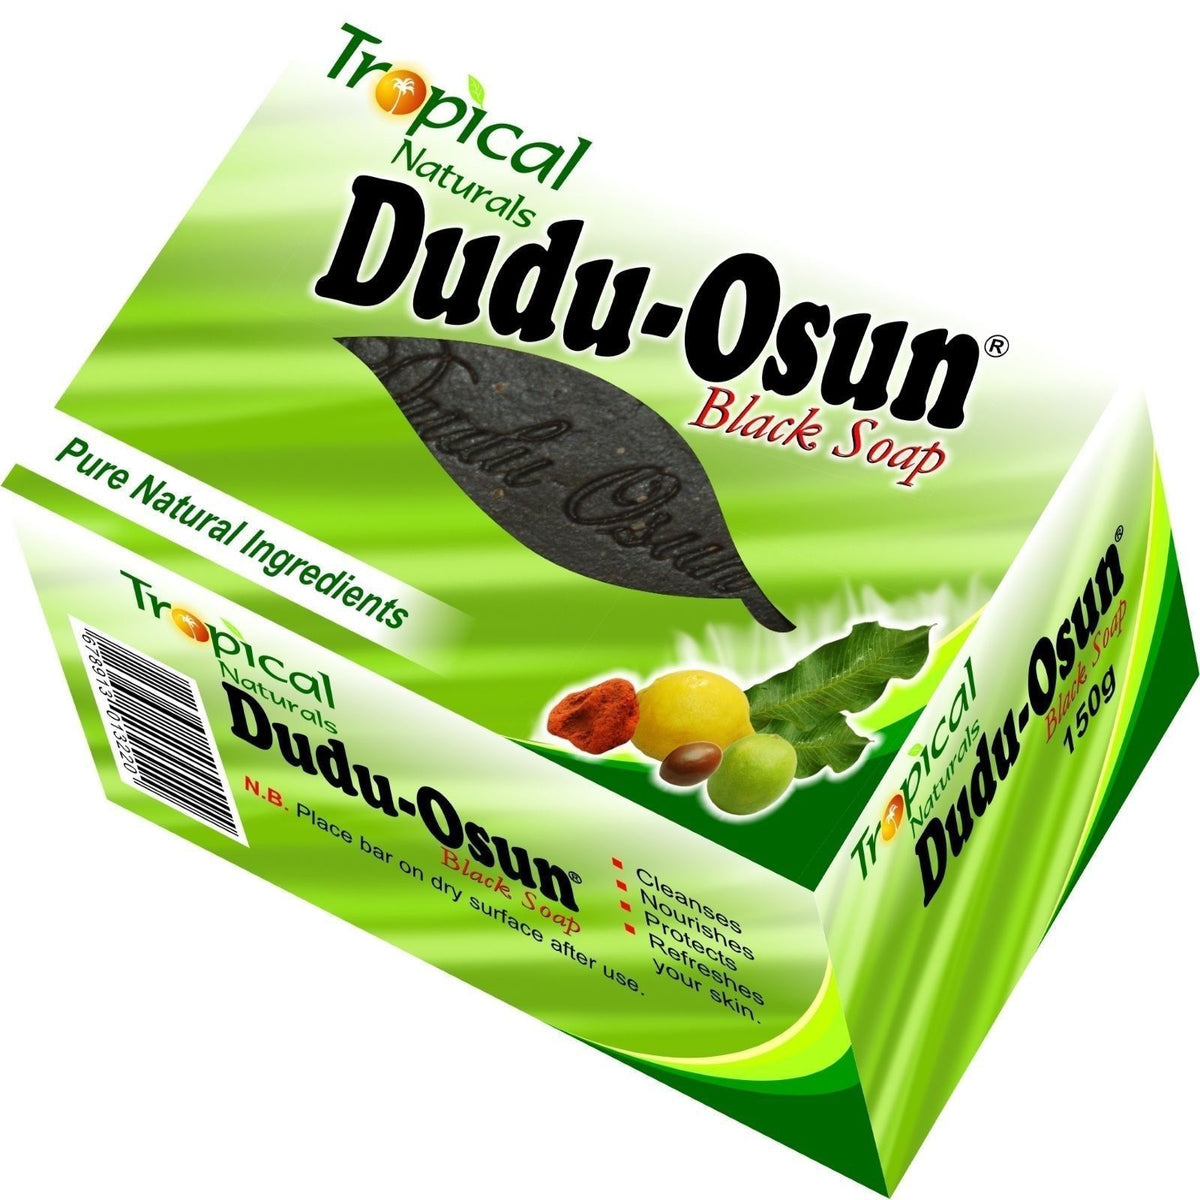 Tropical naturals dudu osun soap - The secret to healthy skin